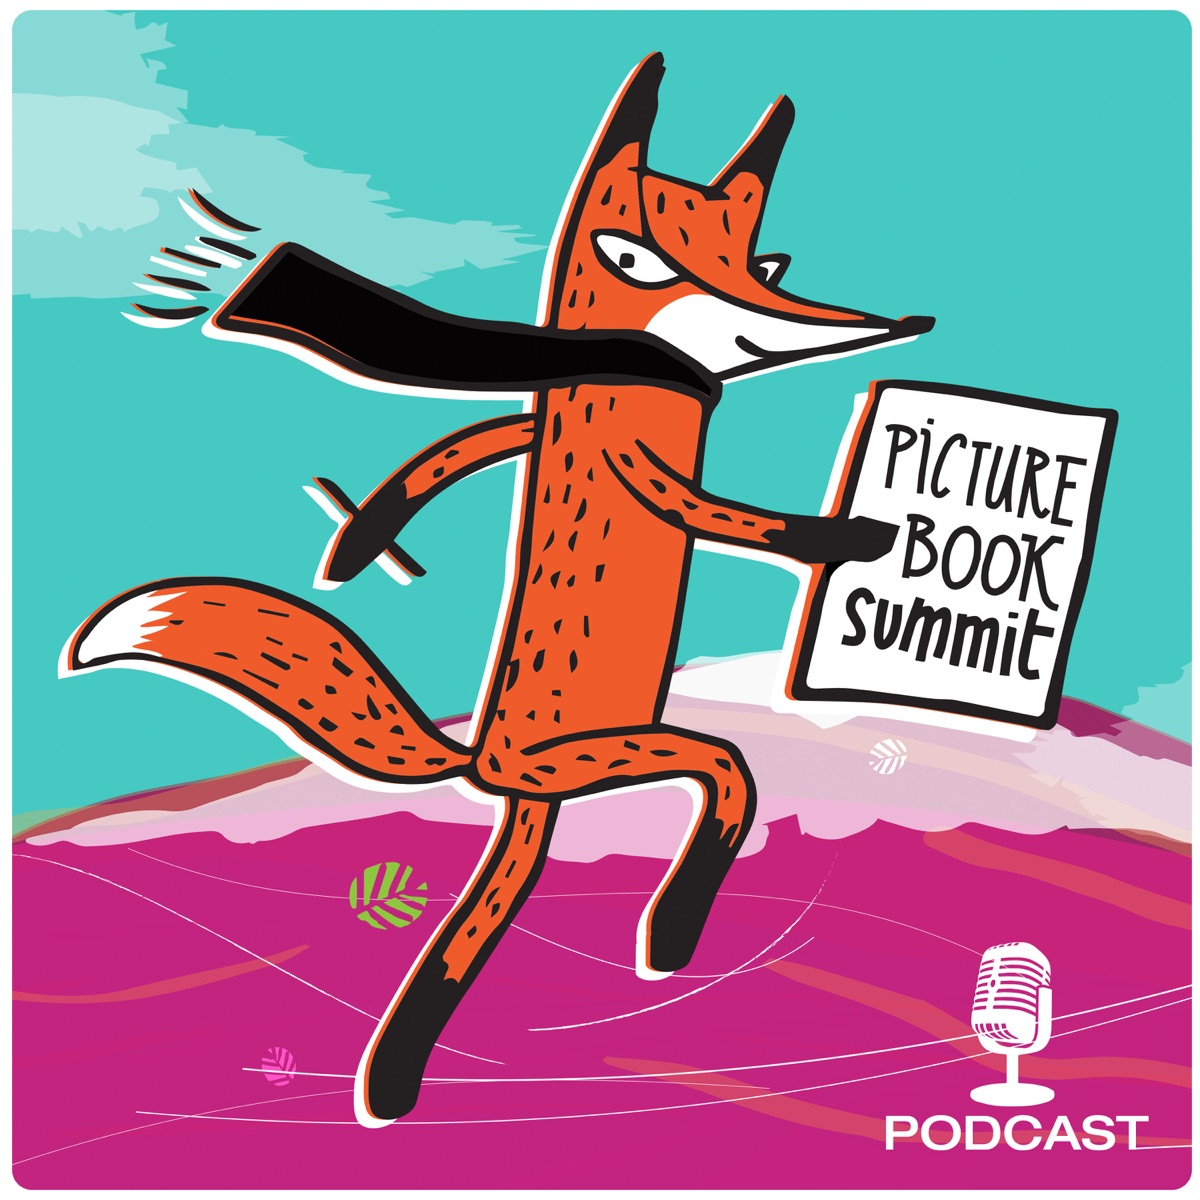 Picture Book Summit Podcast